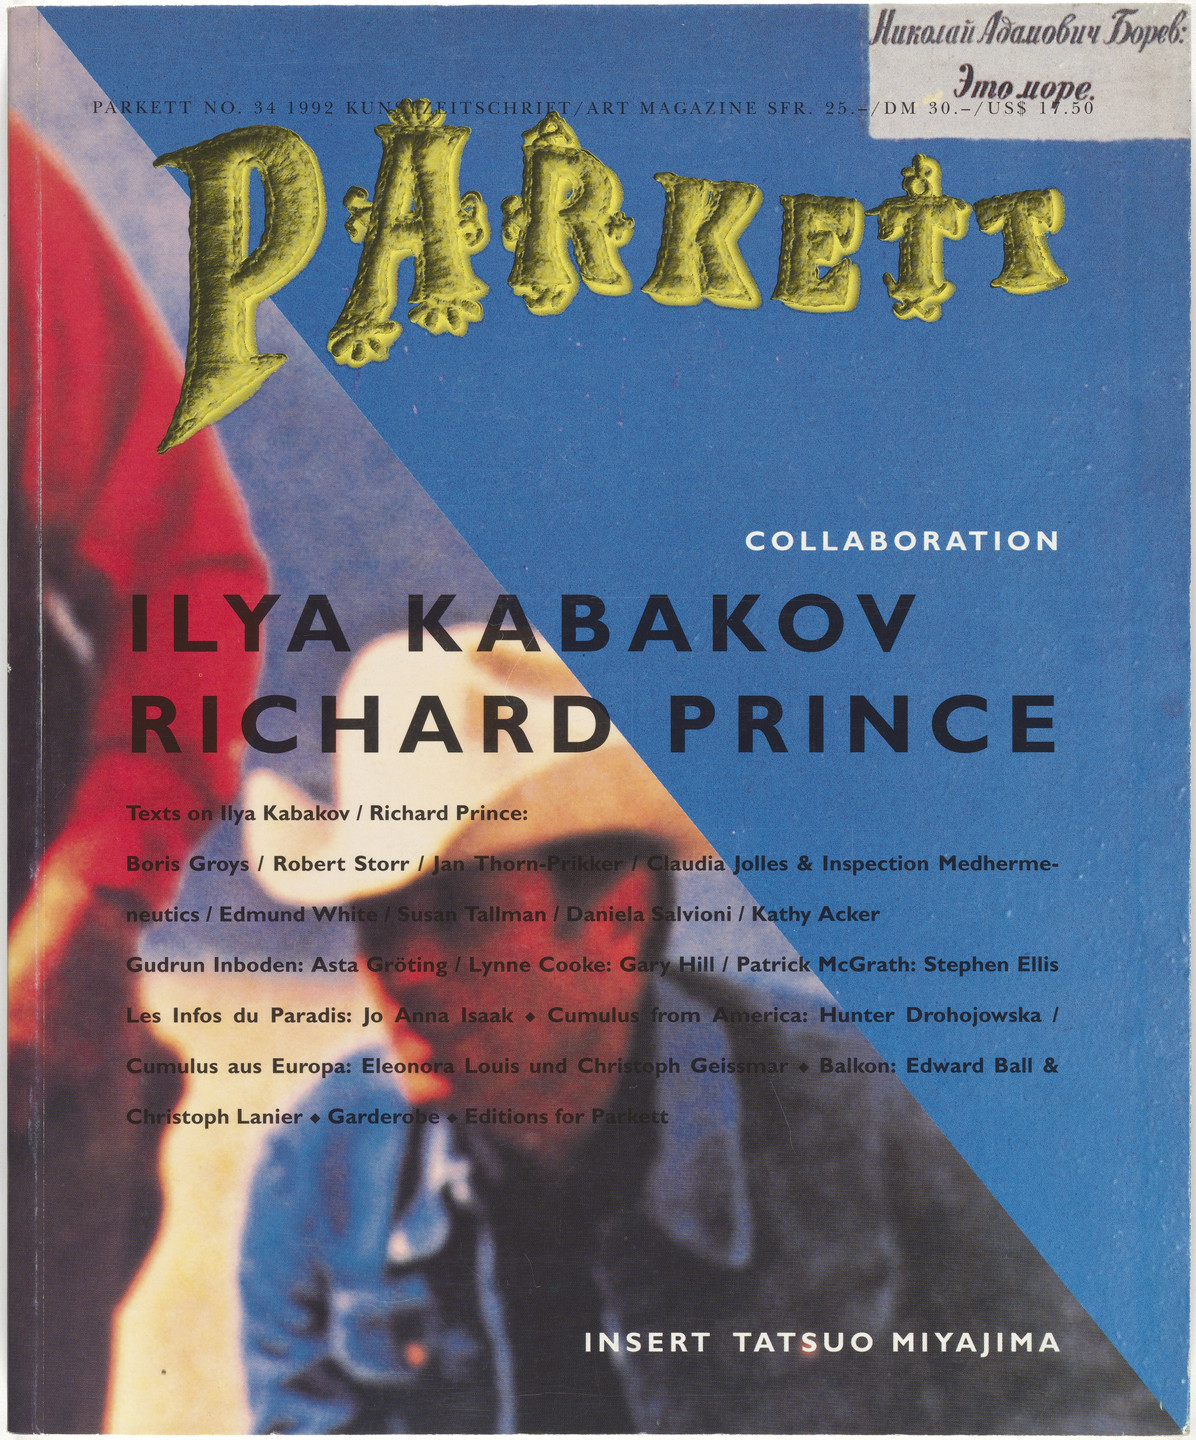 Ilya Kabakov, Richard Prince, Tatsuo Miyajima, Sam Samore, Various Artists. Parkett no. 34. 1992